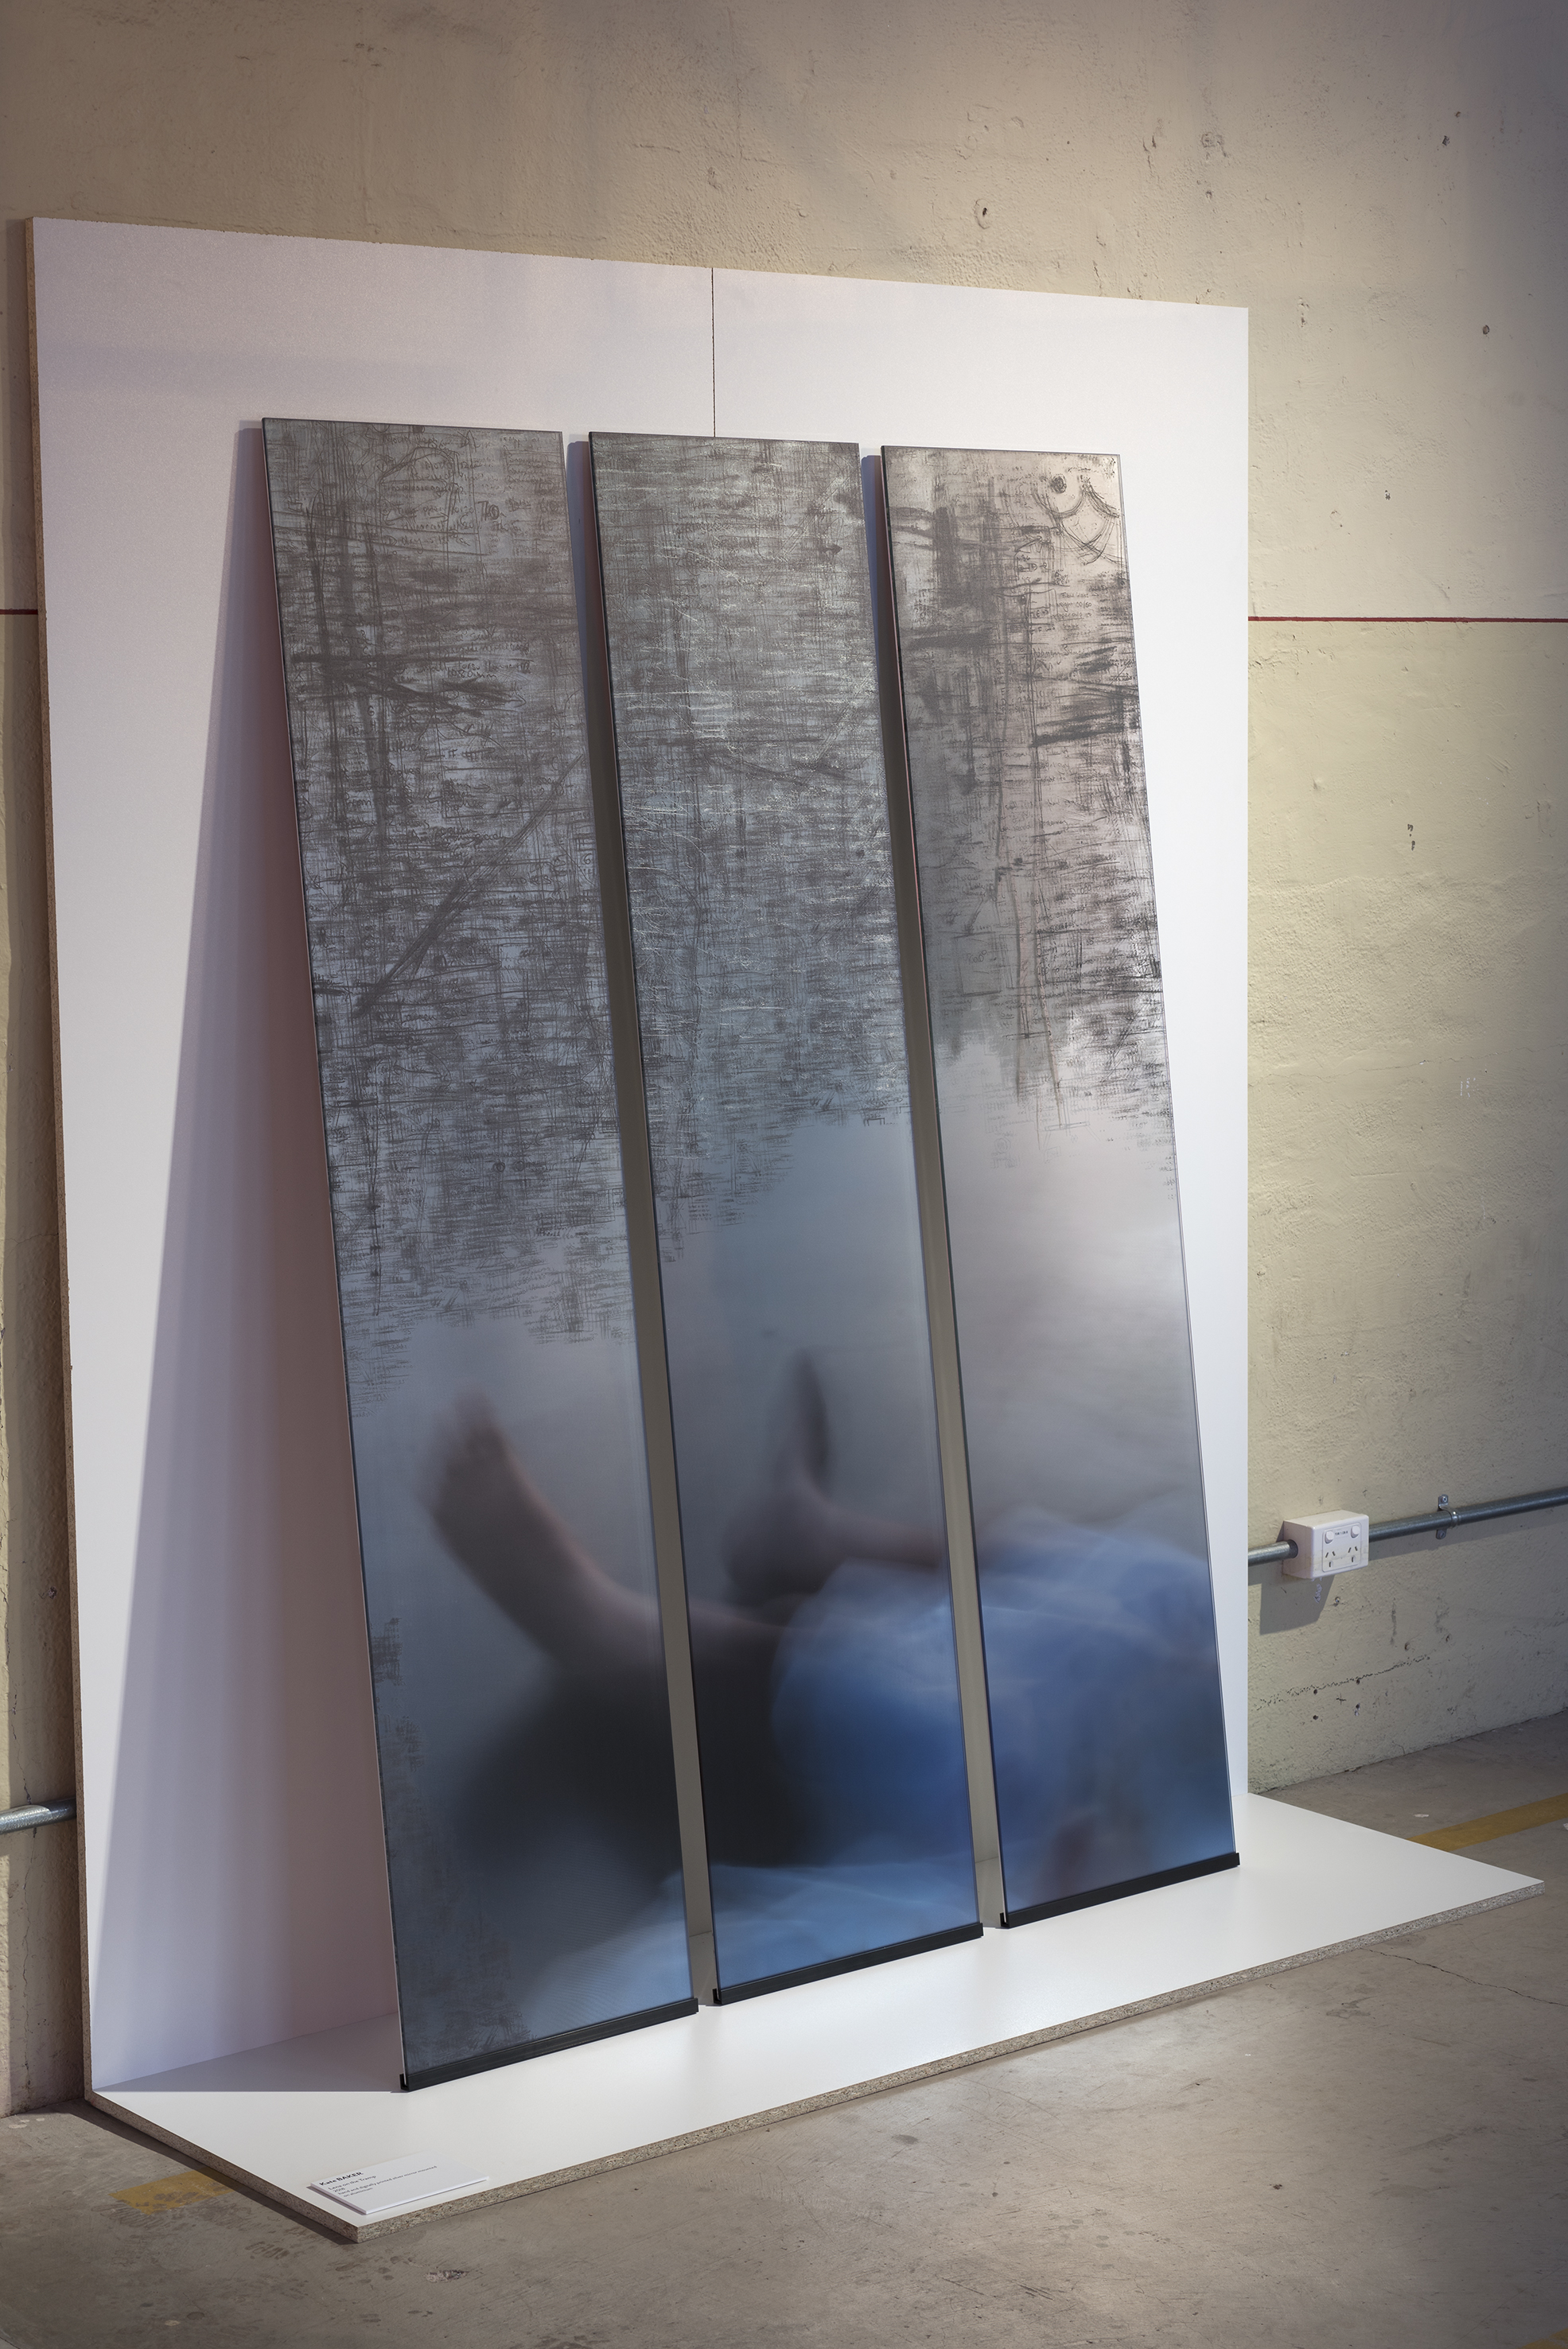 Kate Baker,  Lena on the Tramp , 2018, hand and digitally printed silver mirror, courtesy of the artist. Image: Brenton McGeachie